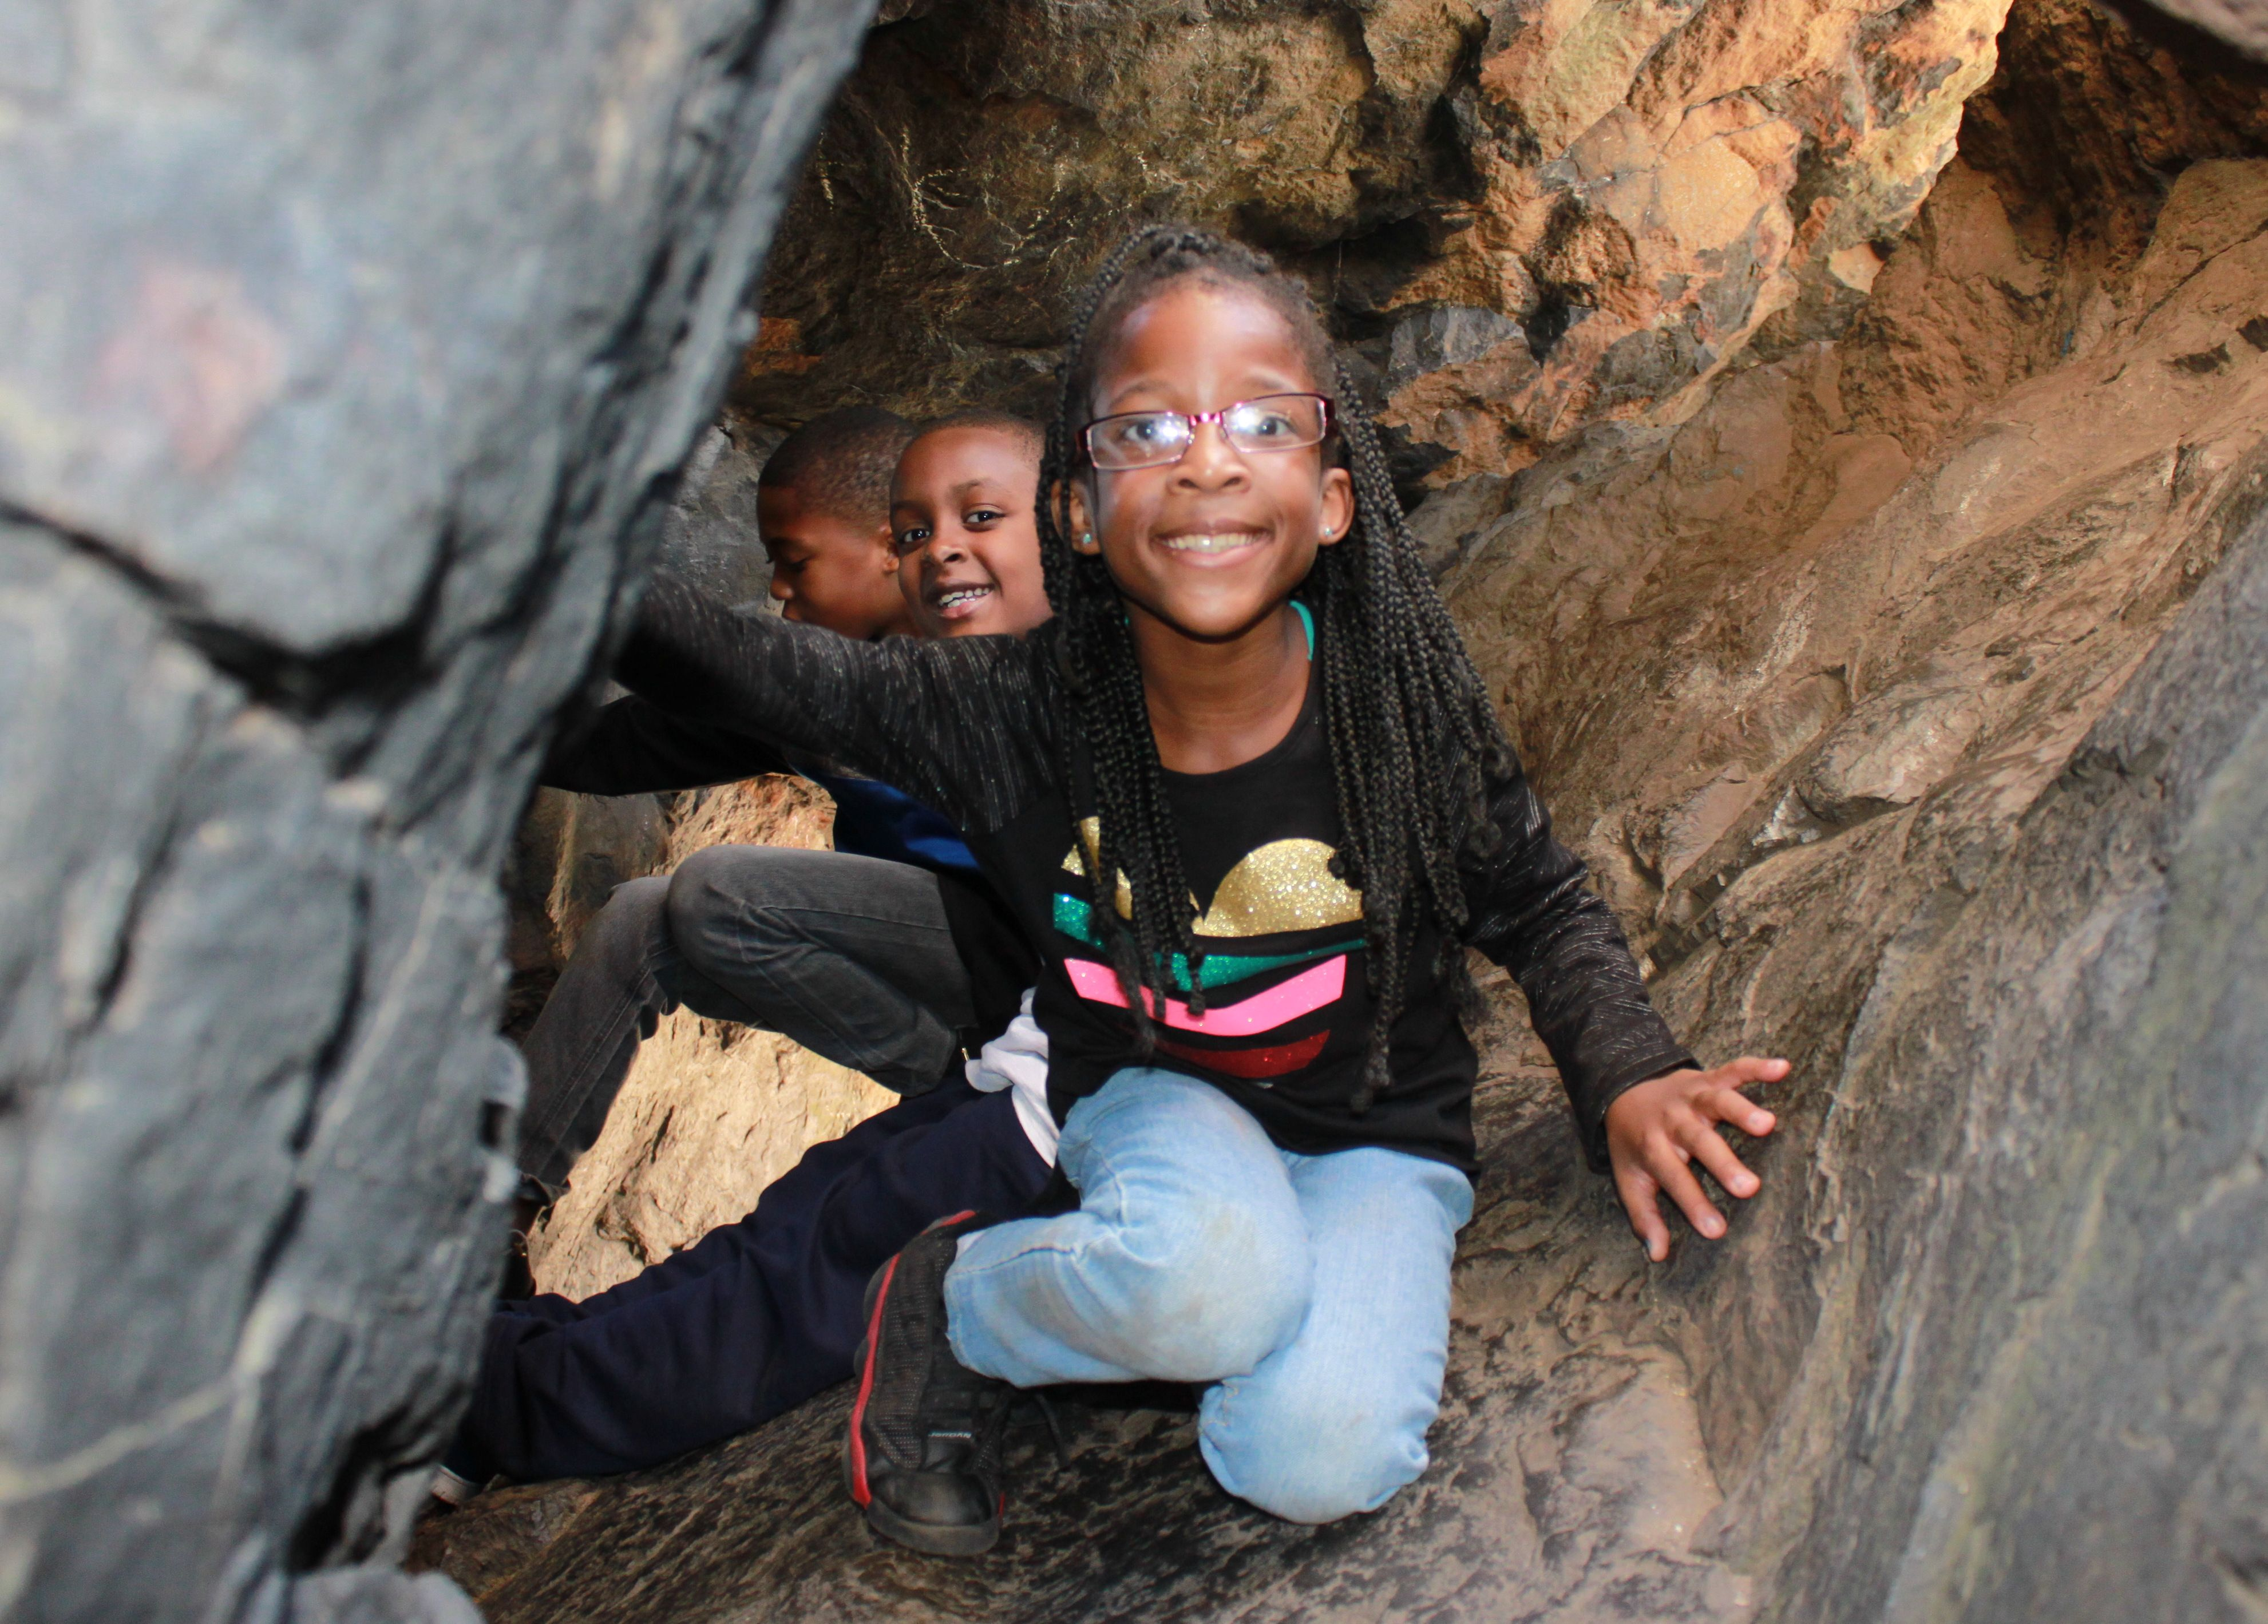 Playing in Judges Cave- Nature's own jungle gym